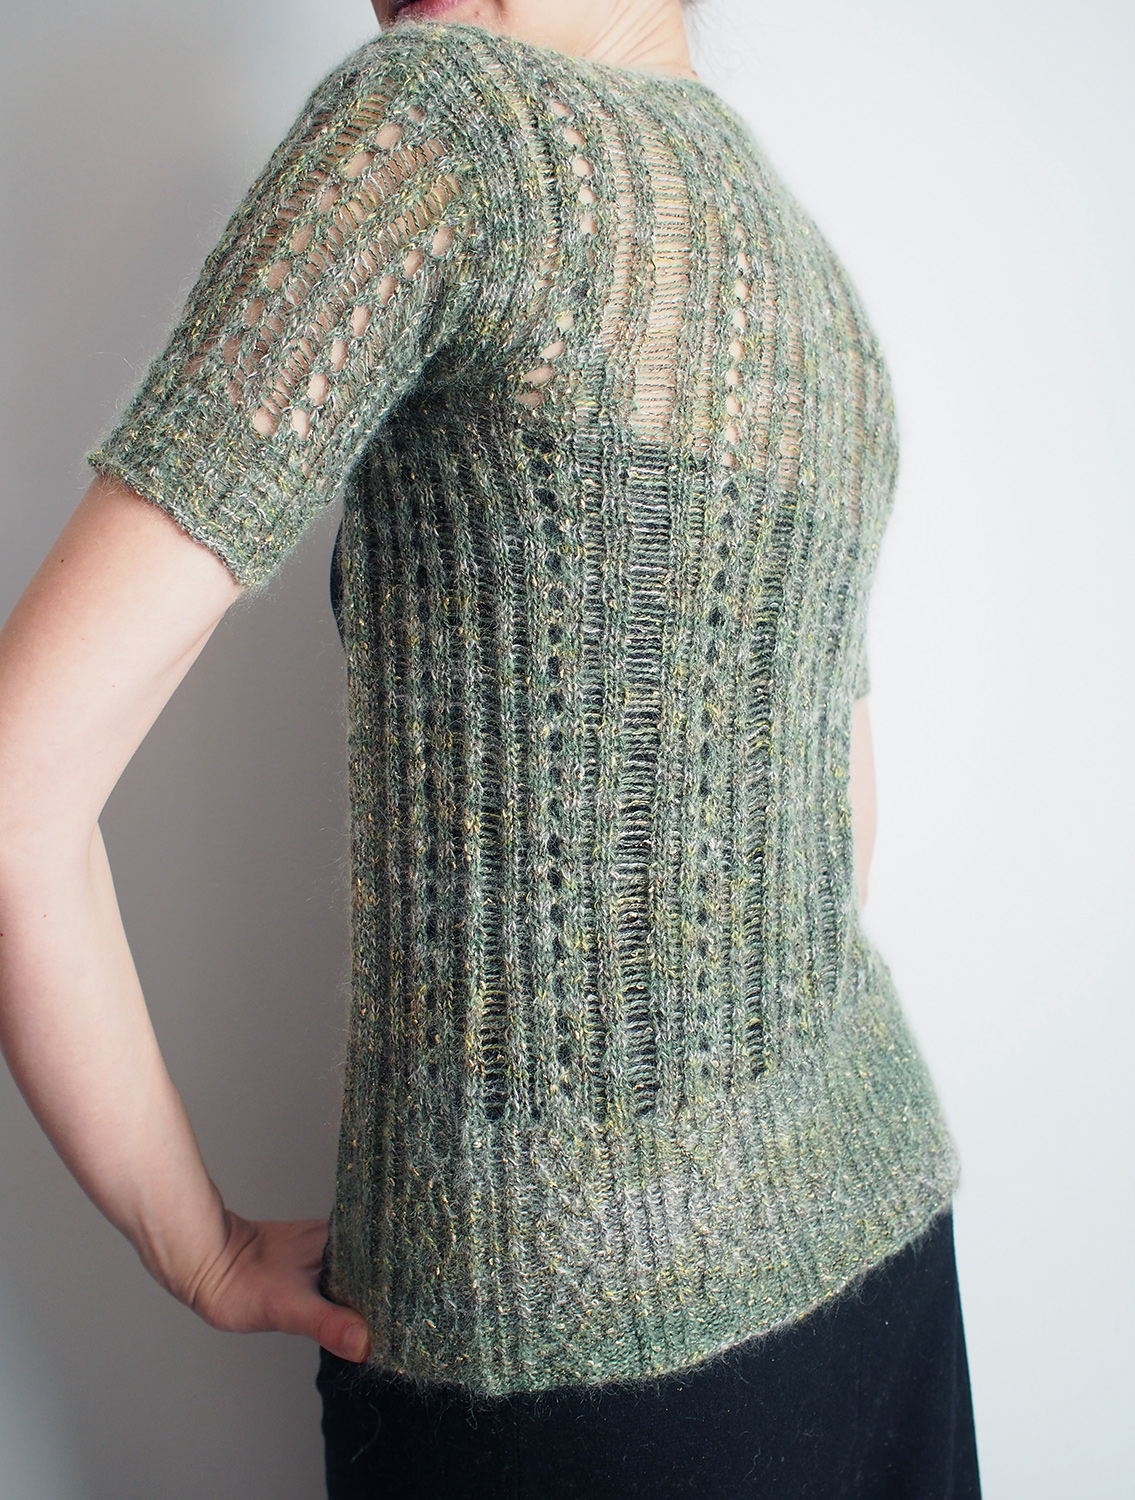 Free Drop Stitch Knitting Patterns : Dayana Knits: Using Dropped Stitches to Make Lace -- Catskills Cardi